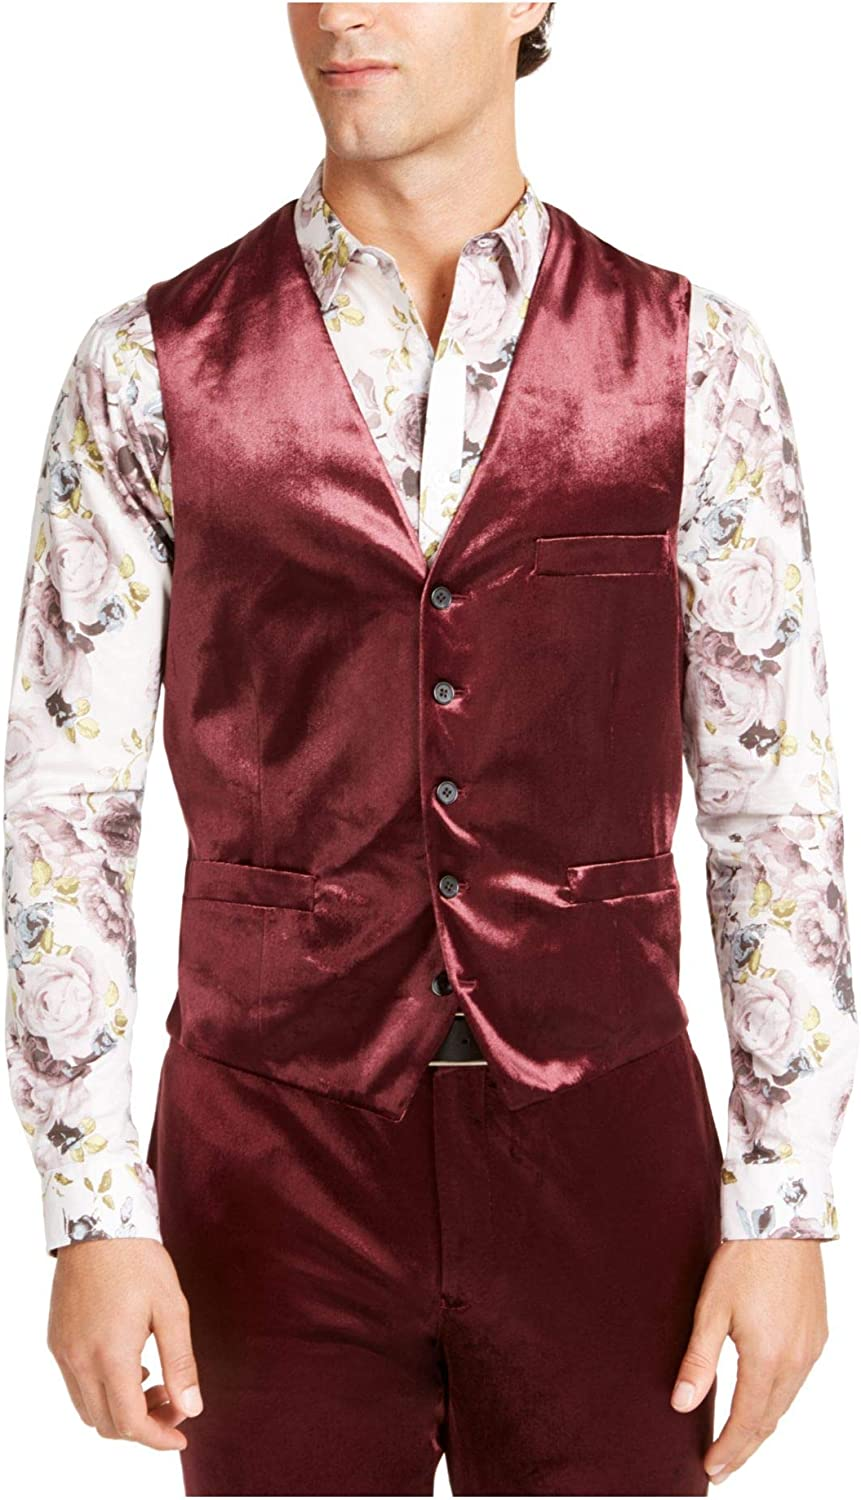 I.N.C. International Concepts INC Mens Burgundy Belted, Single Breasted, Slim Fit Suit Separate 4XL Tall